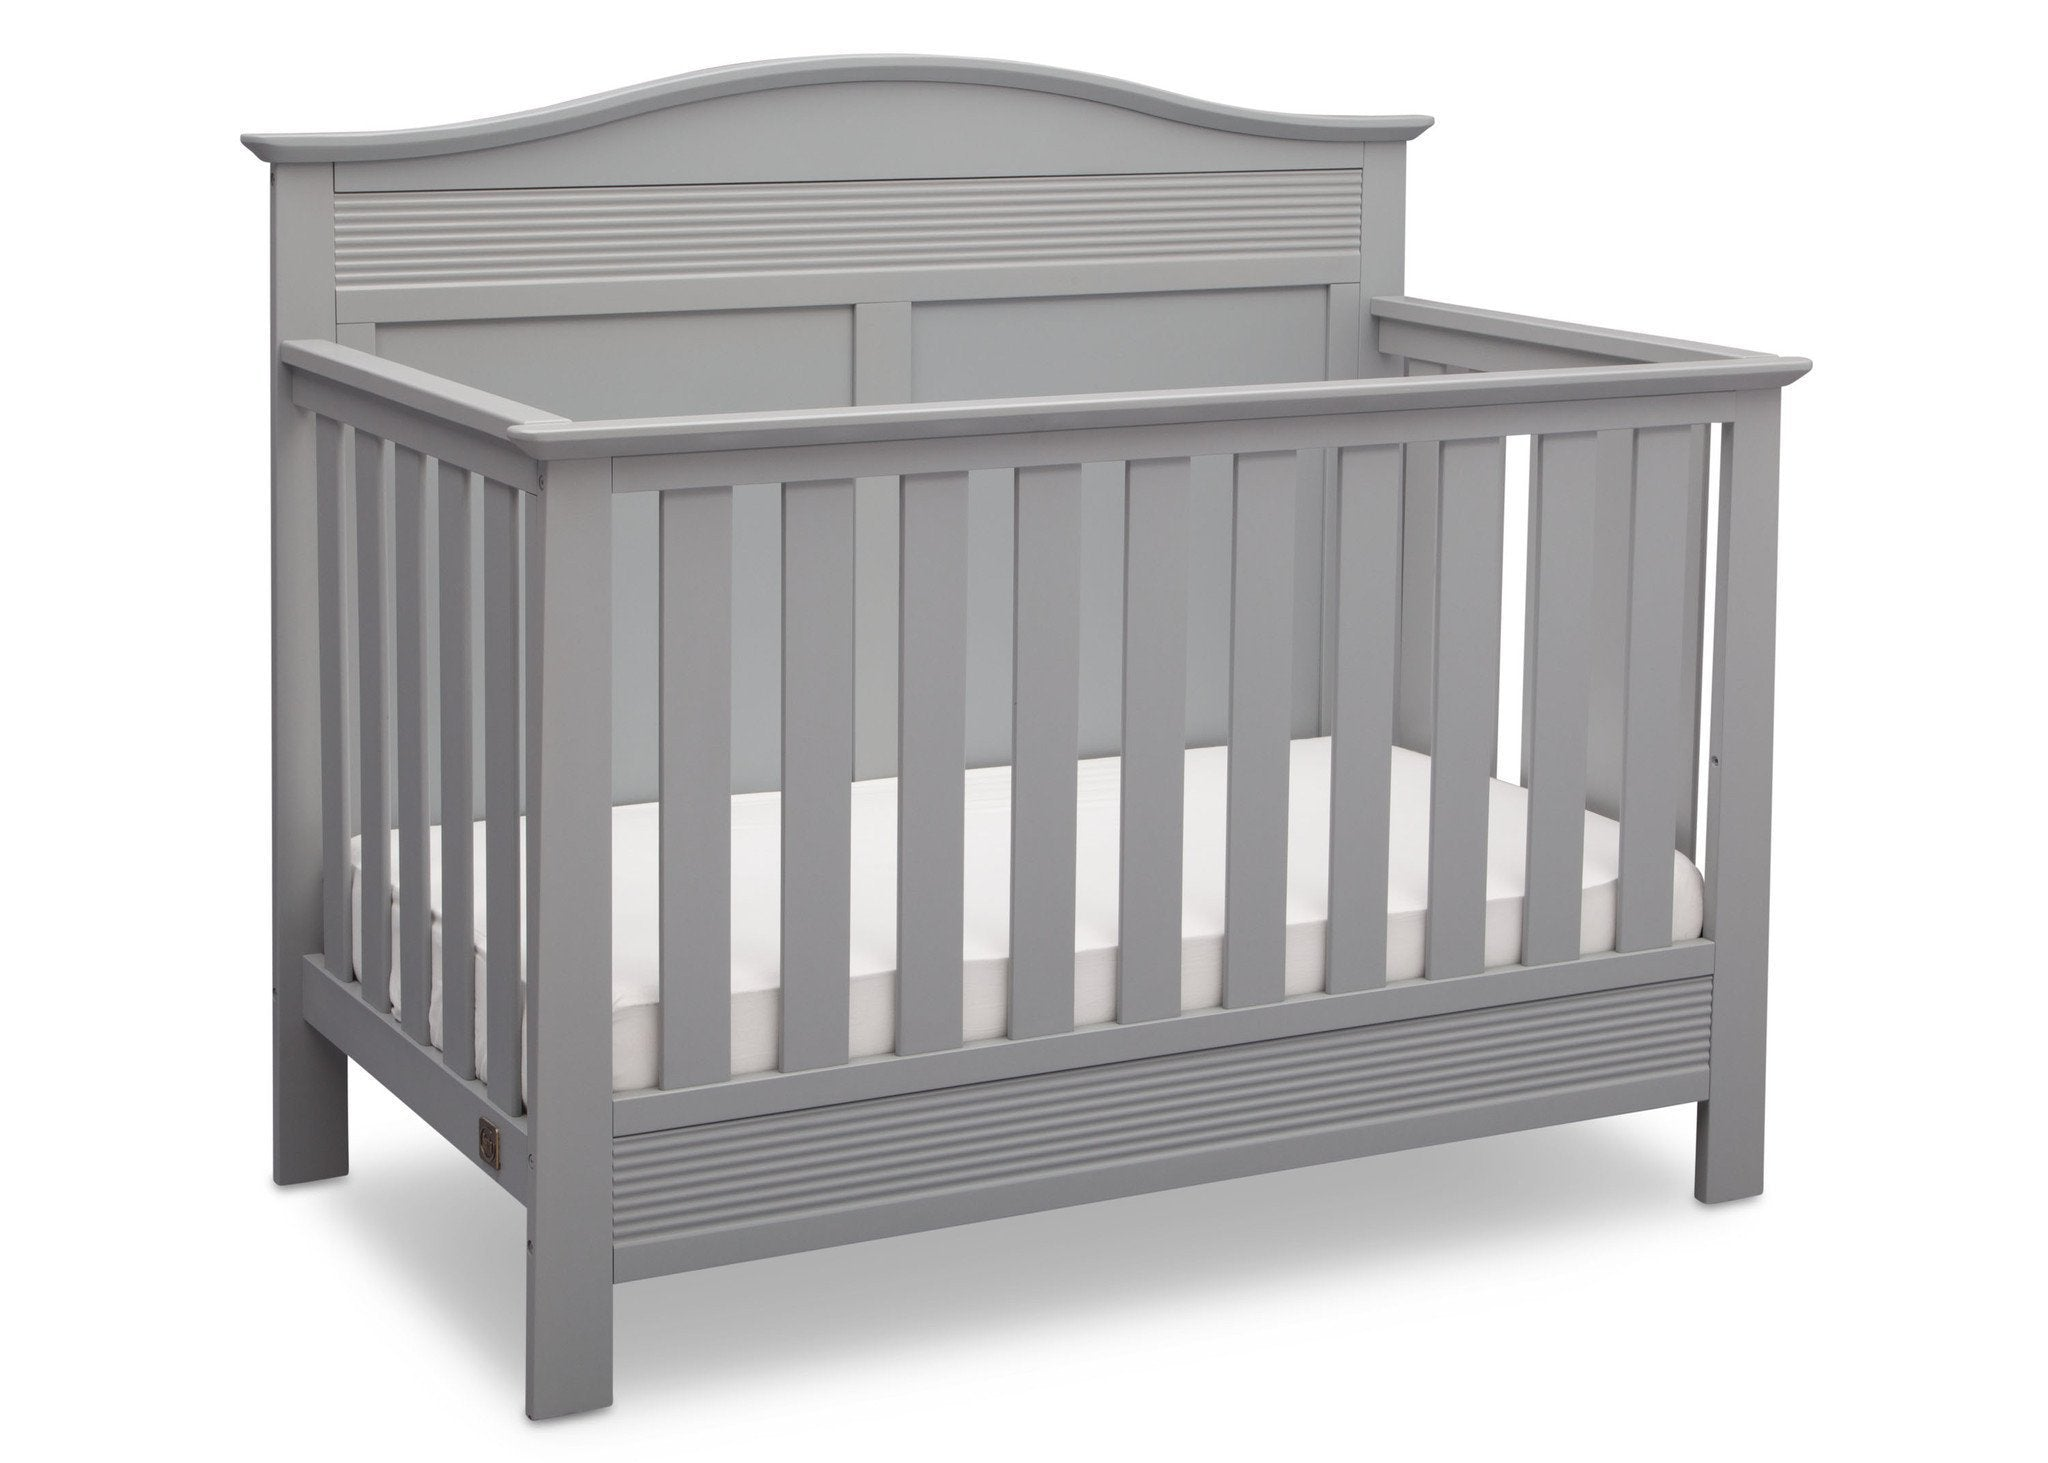 Serta Grey (026) Barrett 4-in-1 Convertible Crib, Right Crib View a2a